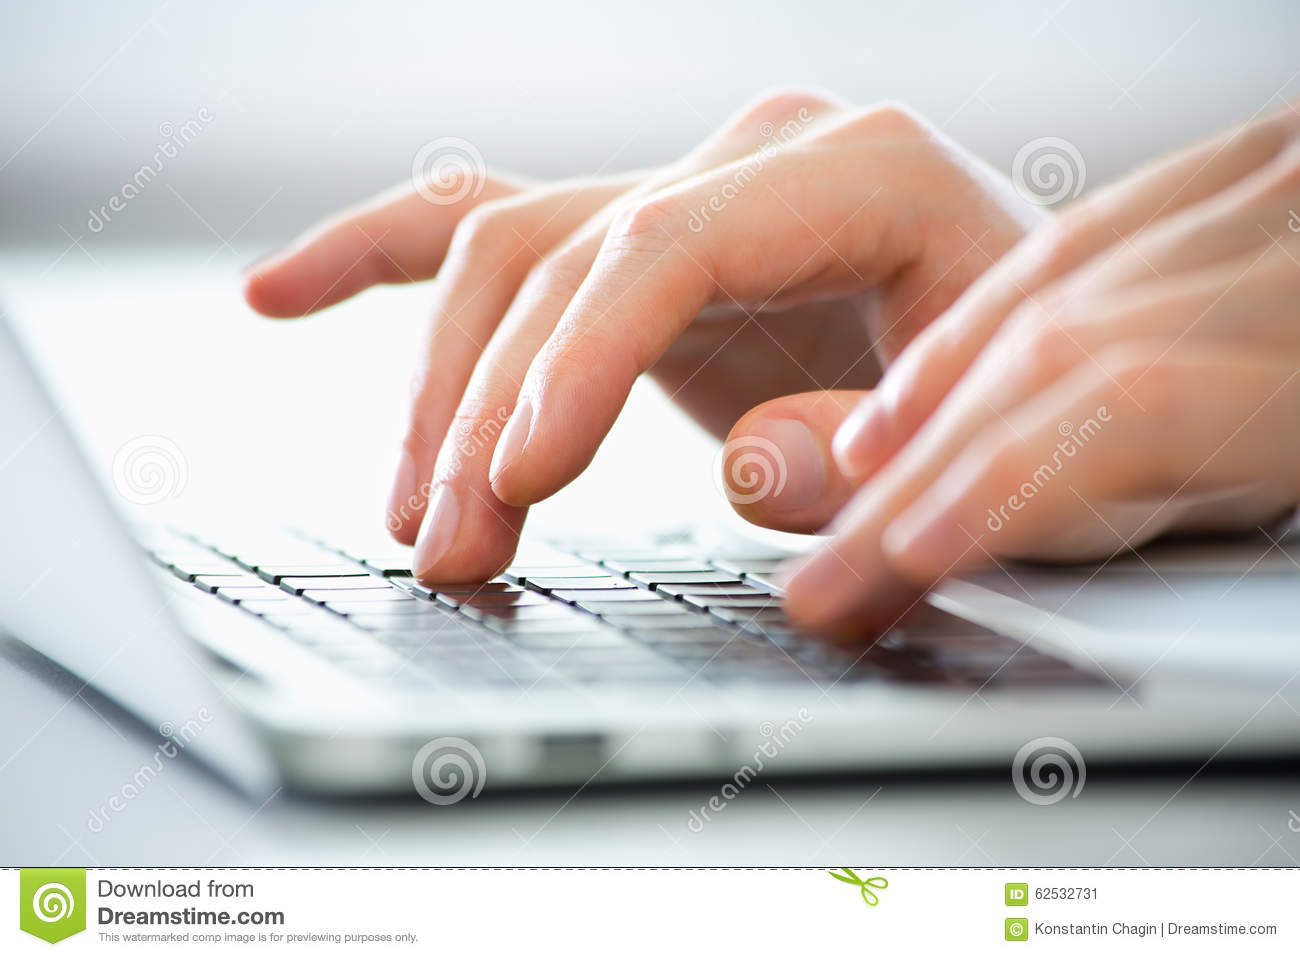 Hands of business man typing on a laptop.